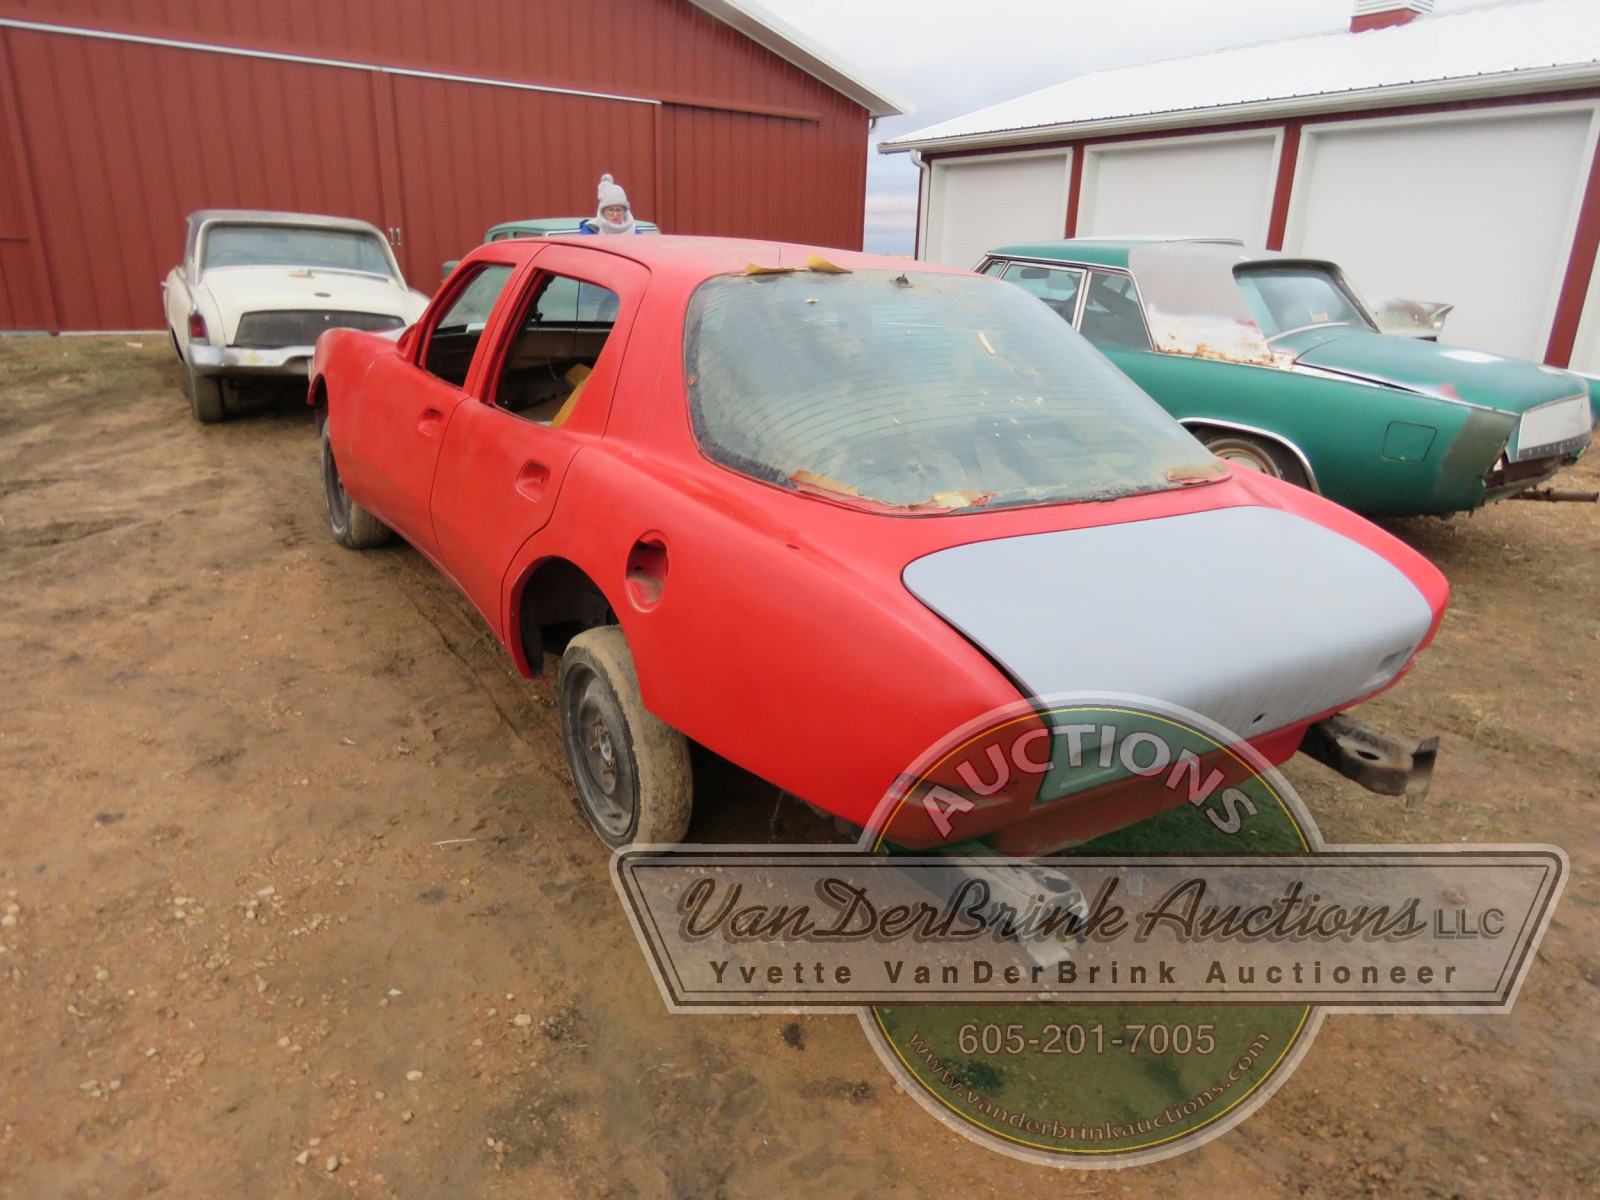 1990 Studebaker Avanti 4dr Sedan Project - Image 5